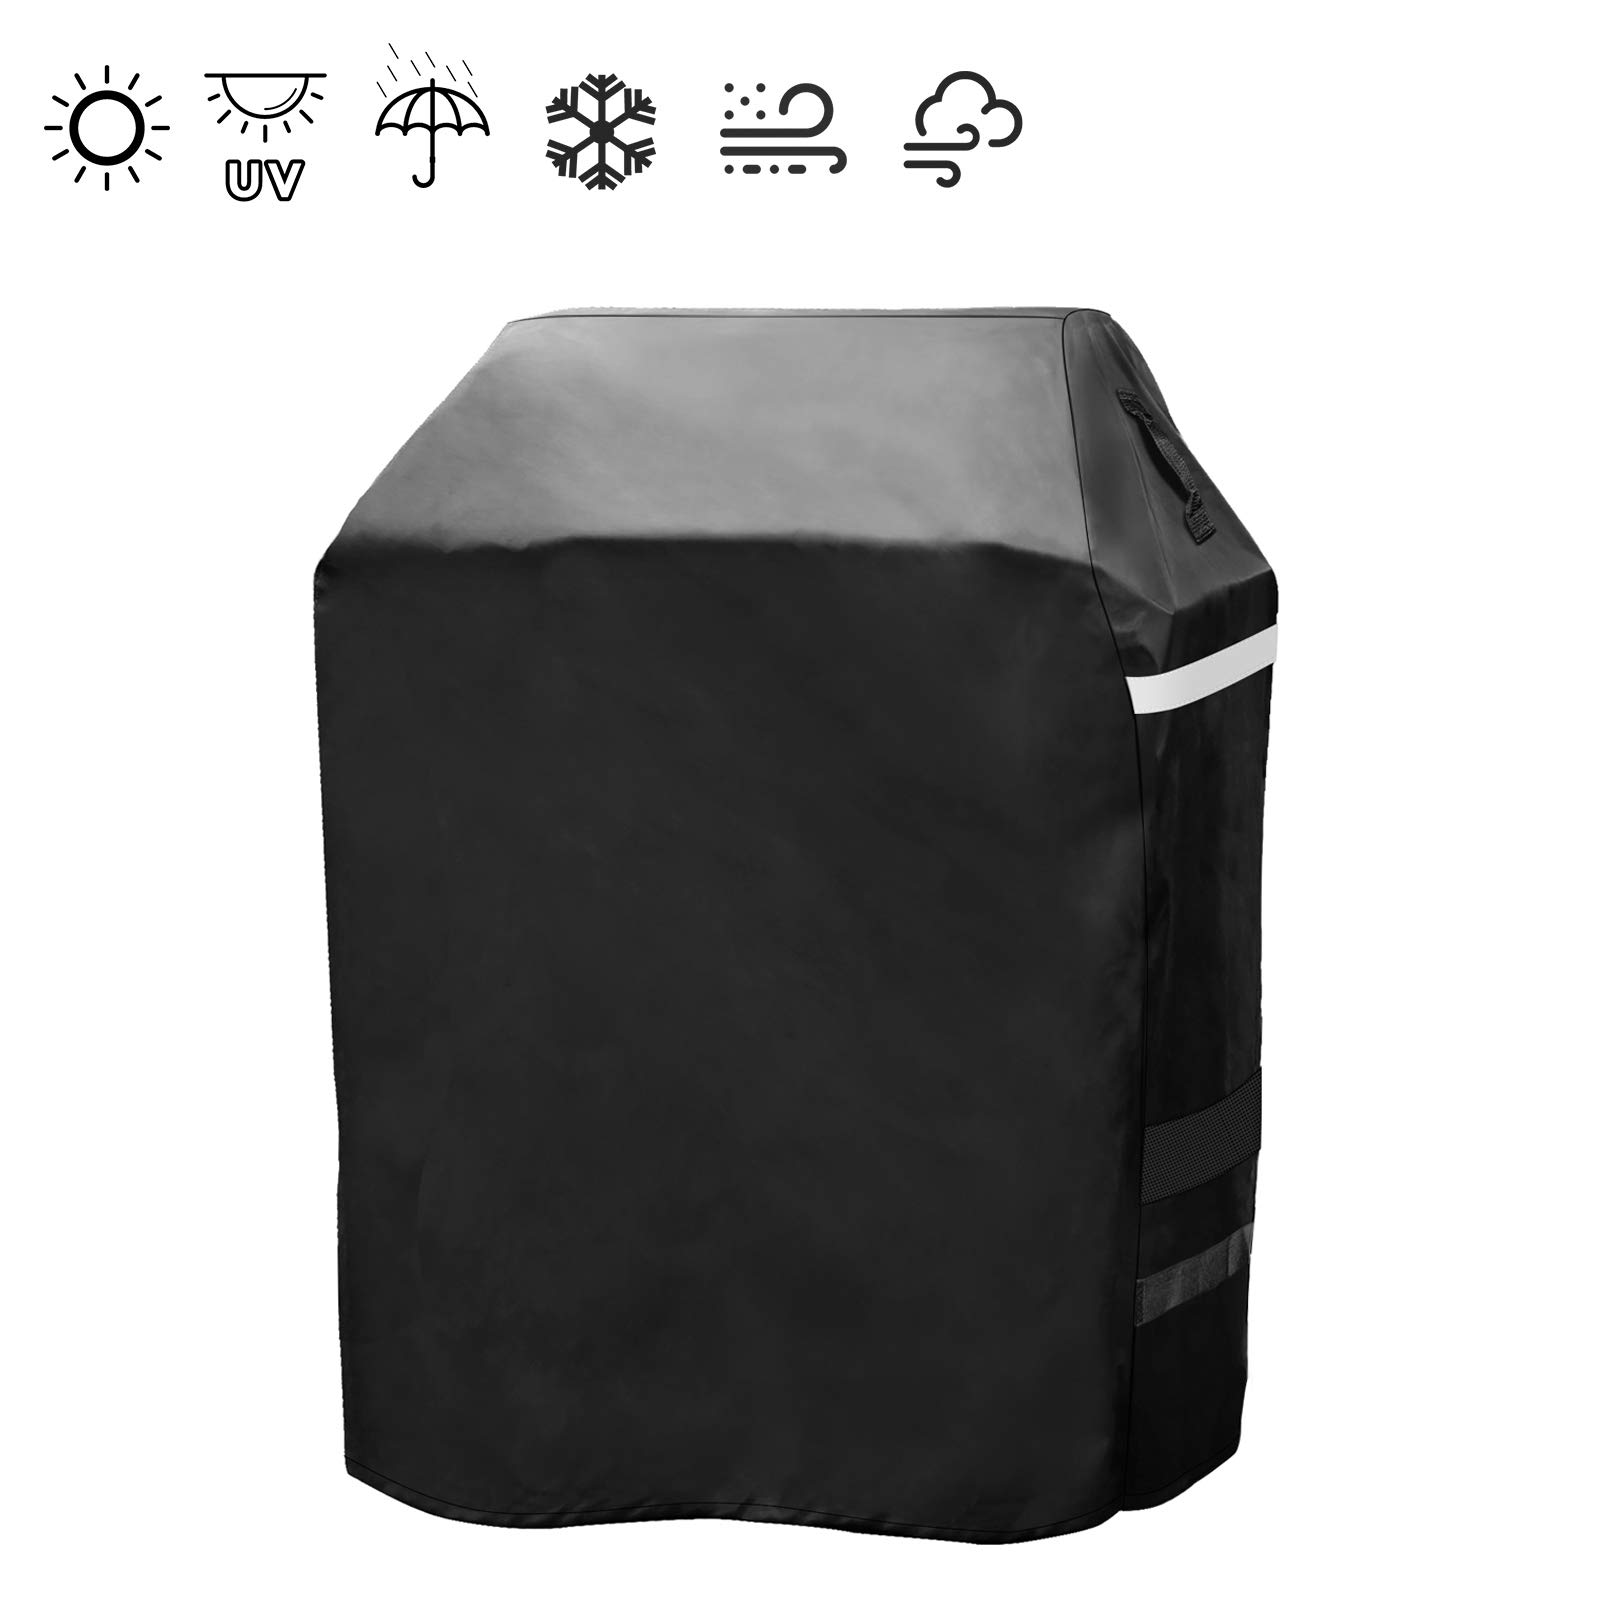 Hisencn 29 Inch Grill Cover for Dyna Glo DG300C Premium 2 to 3 Burner Gas Grill, Heavy Duty Waterproof Small Space LP Grill BBQ Cover for Dyna Glo DGP350SNP-D, DGB390SNP-D, All Weather Protection